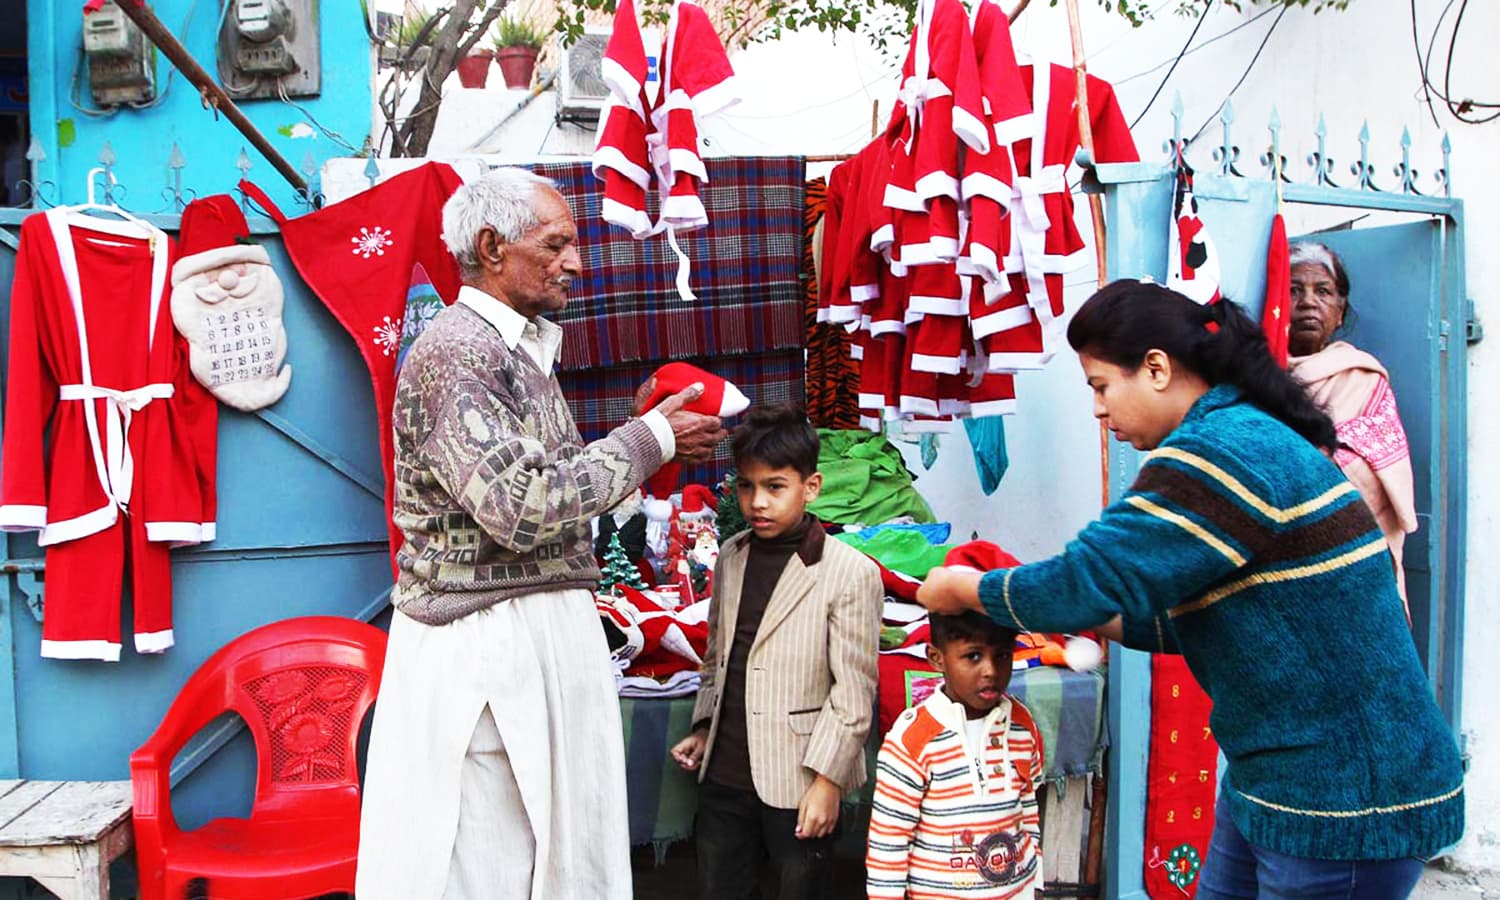 A vendor selling Santa Claus costumes to the customers at his stall  APP